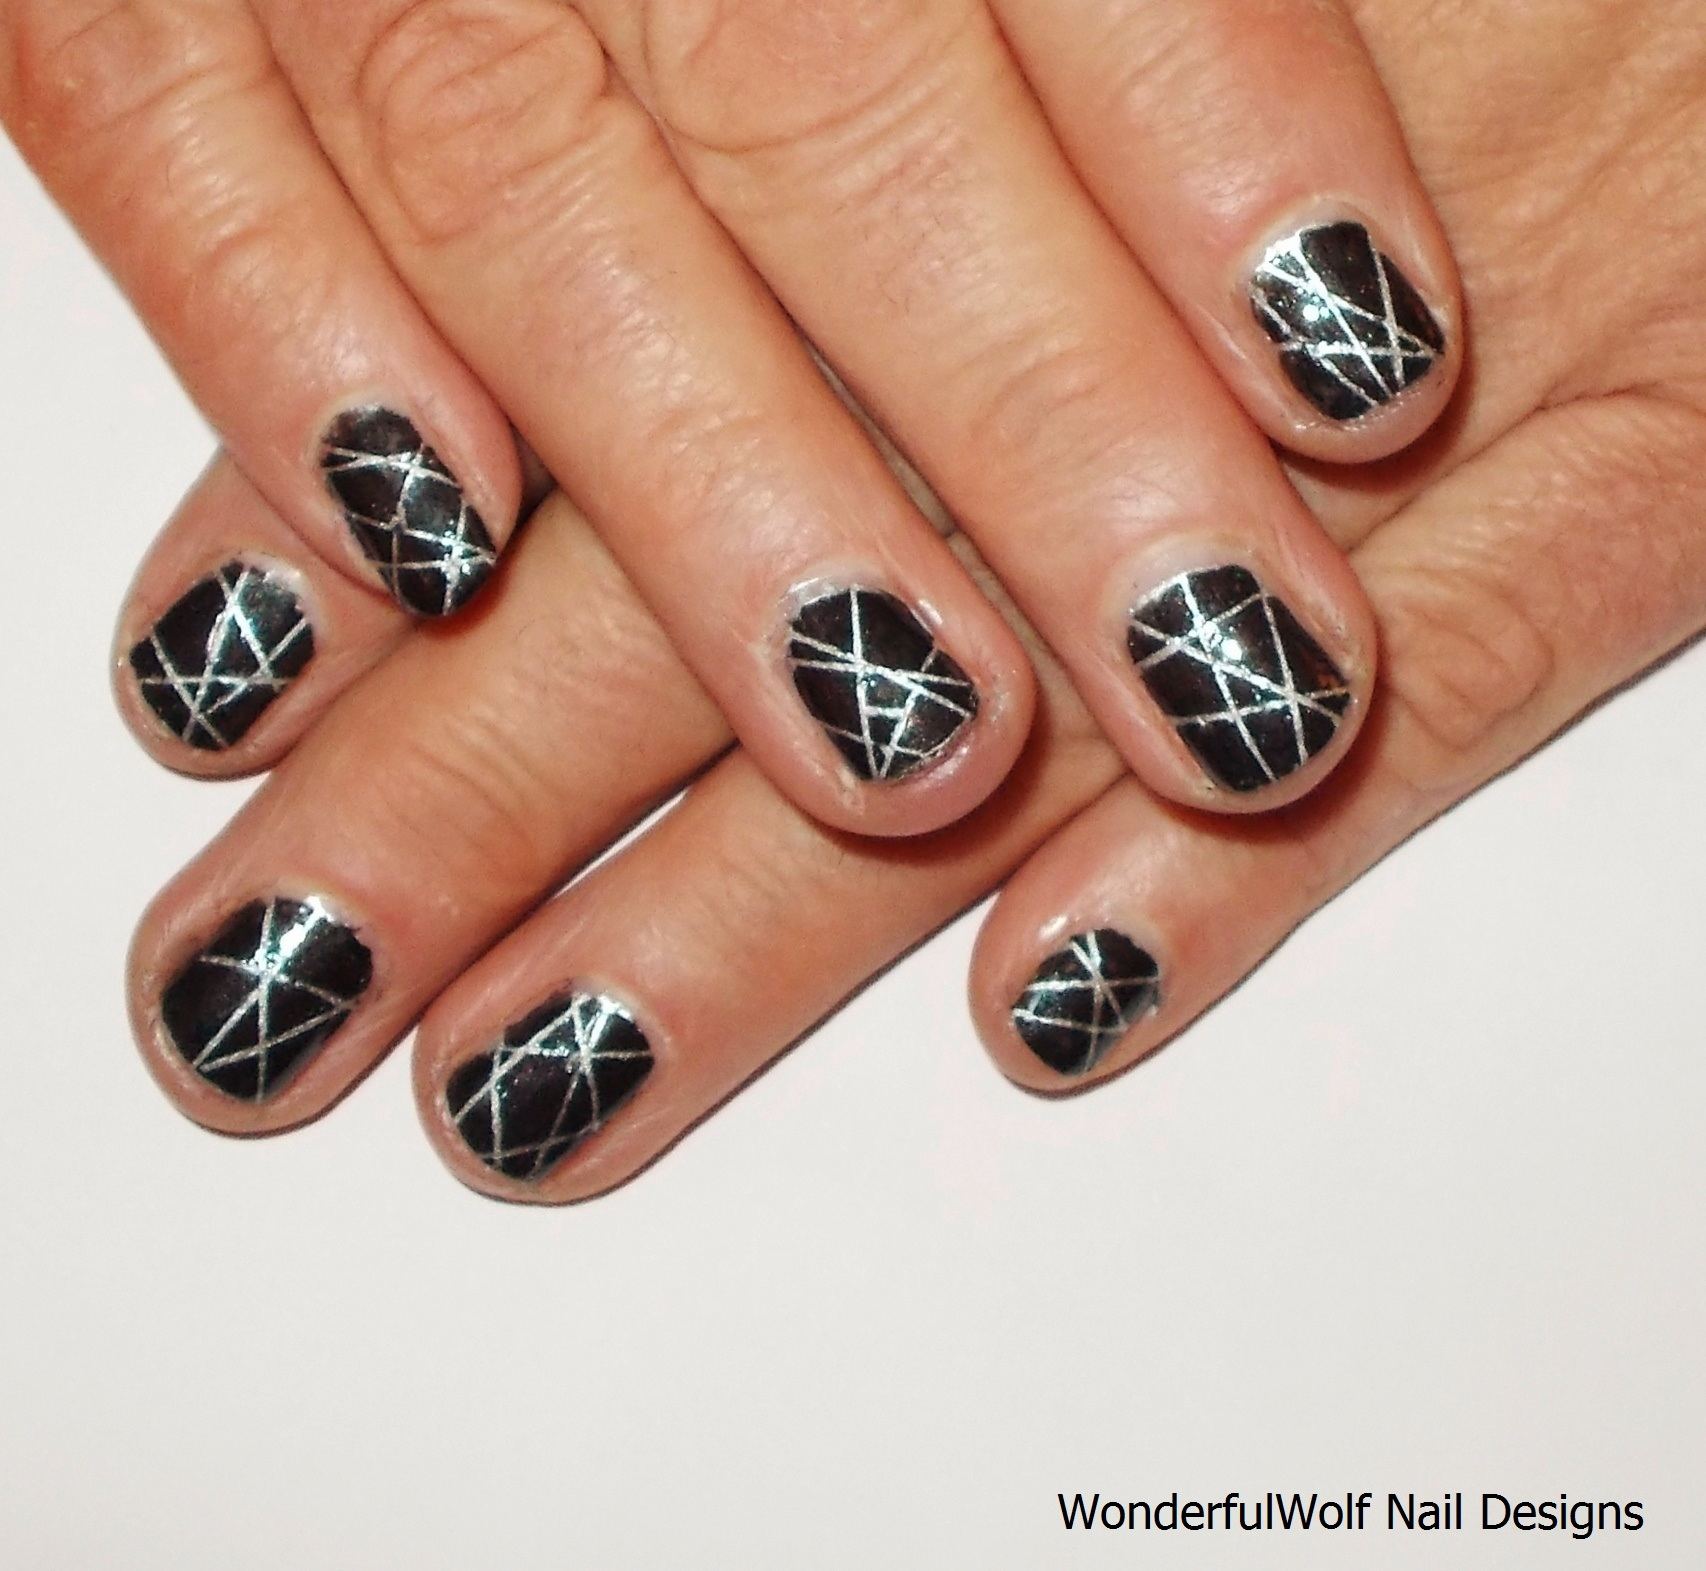 Nail Art With Tape: Nail Tape Designs